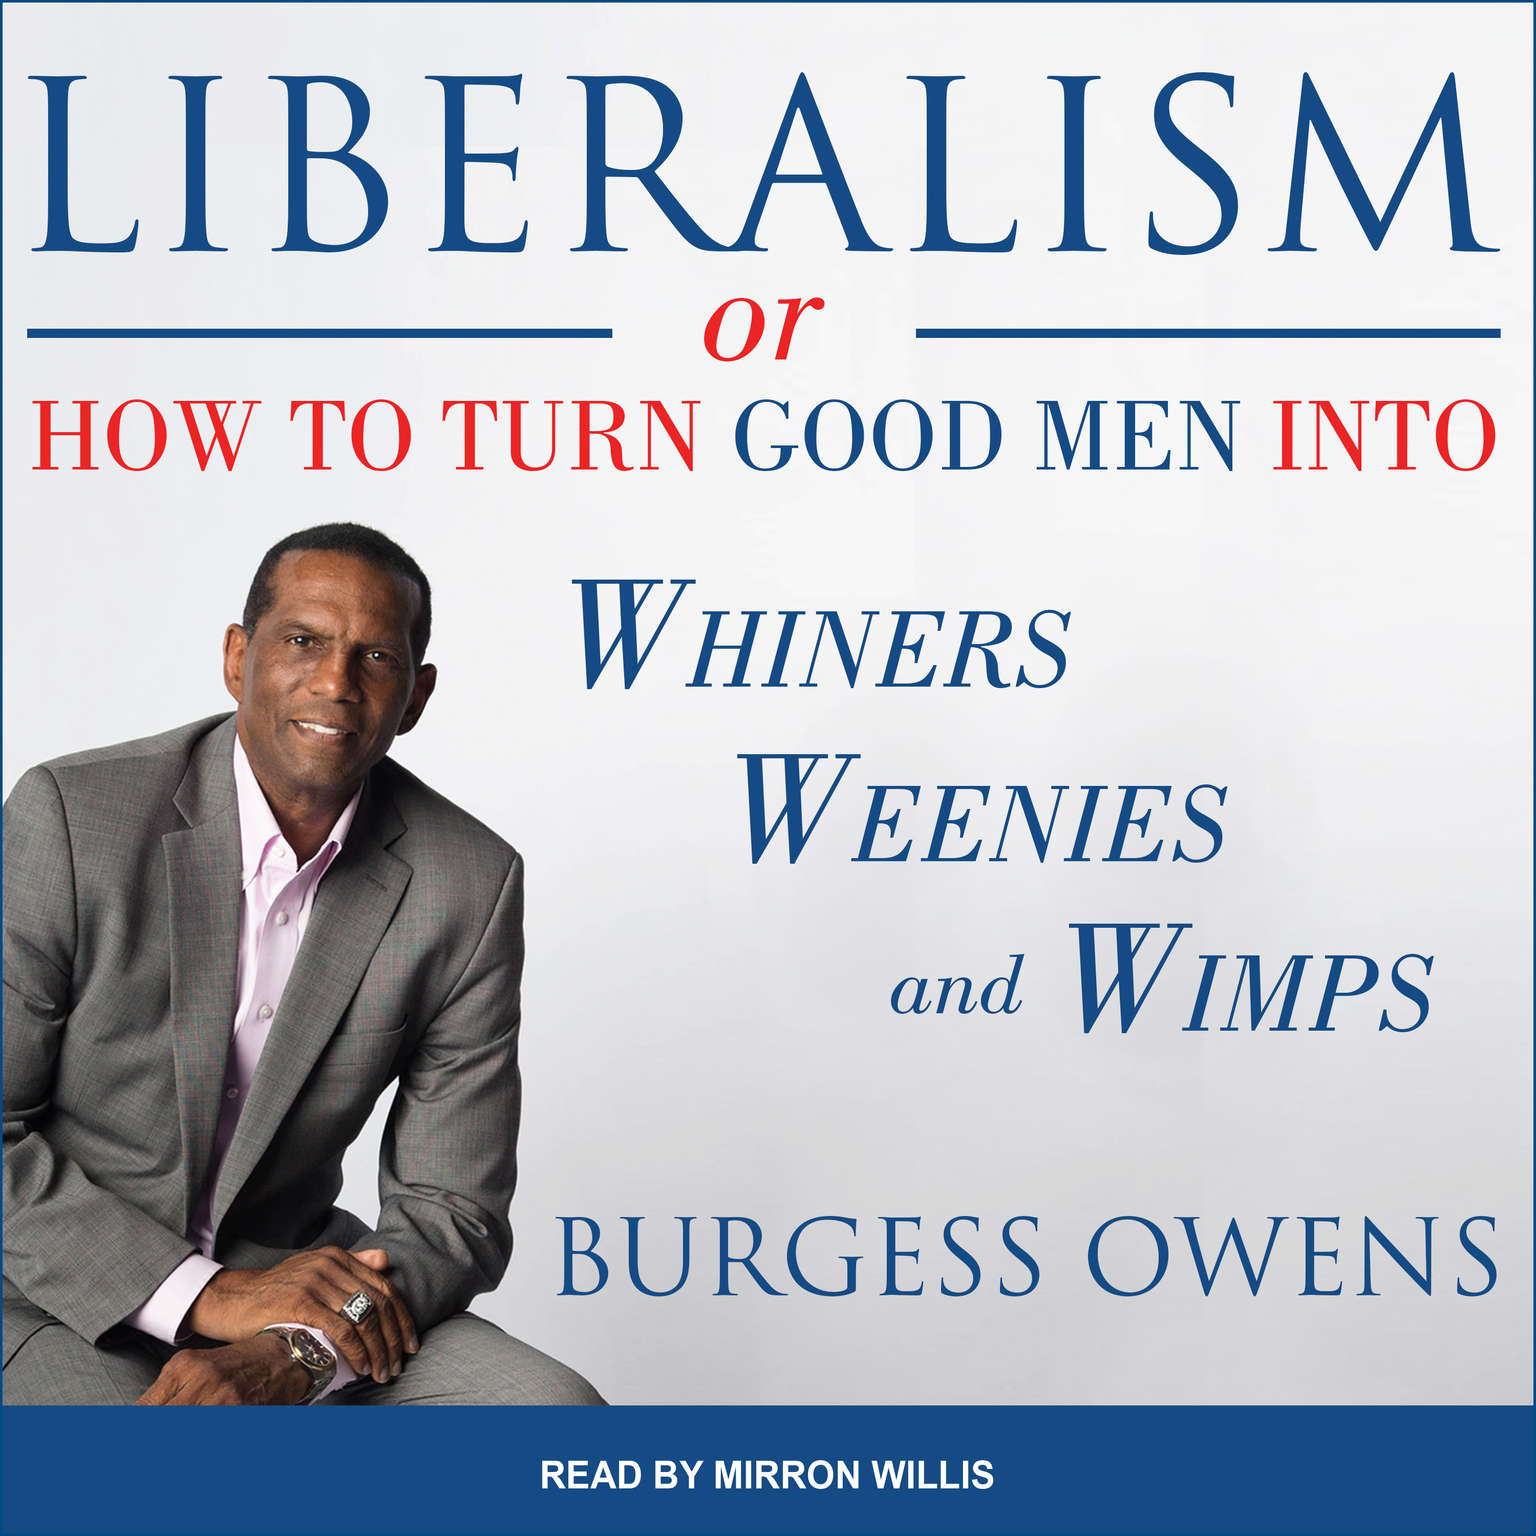 Liberalism or How to Turn Good Men into Whiners, Weenies and Wimps Audiobook, by Burgess Owens